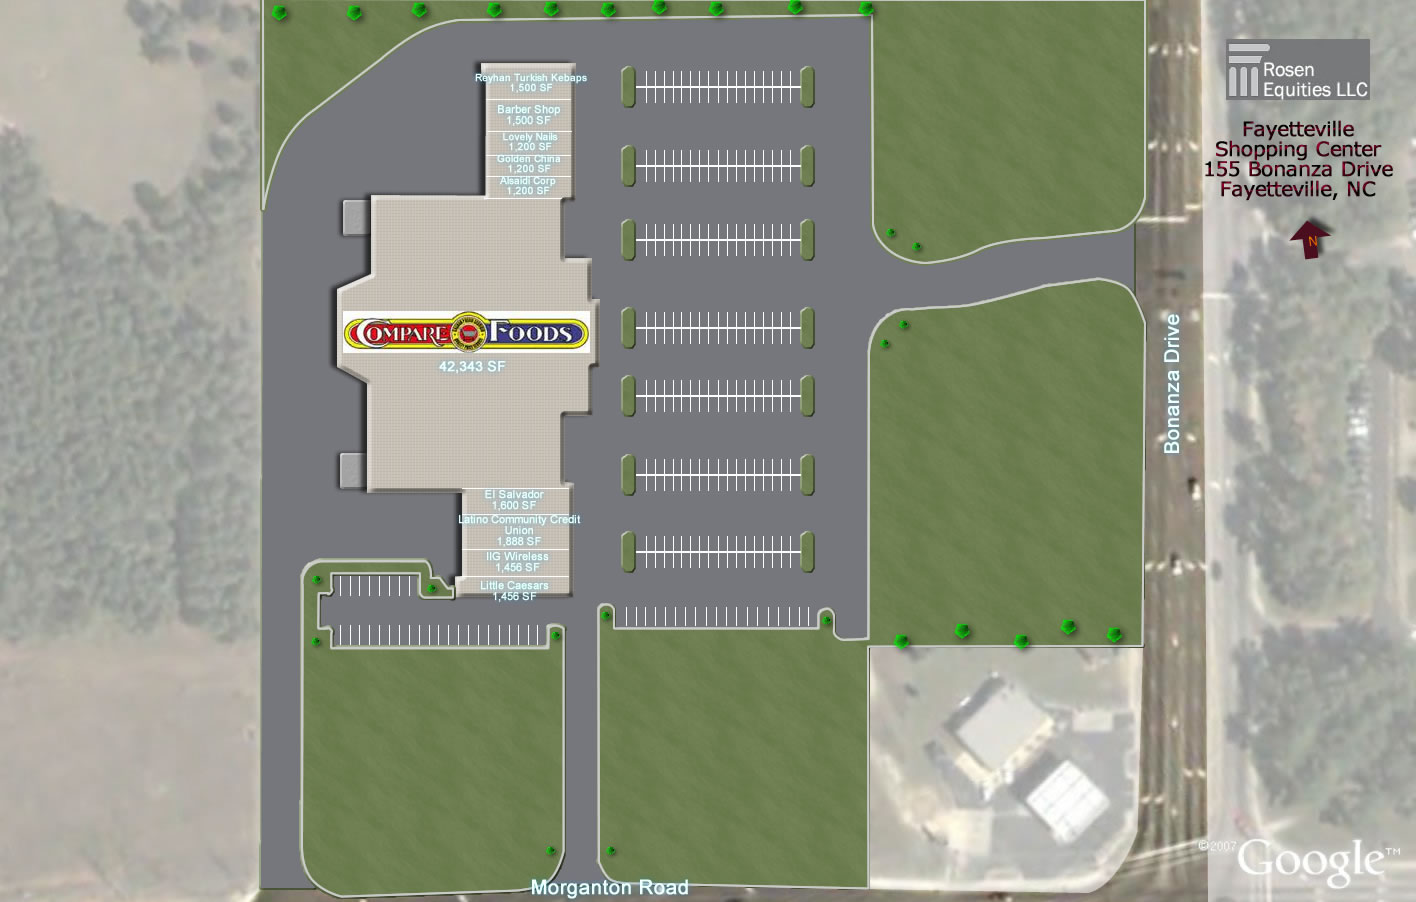 Fayetteville-Compare Foods Center Siteplan